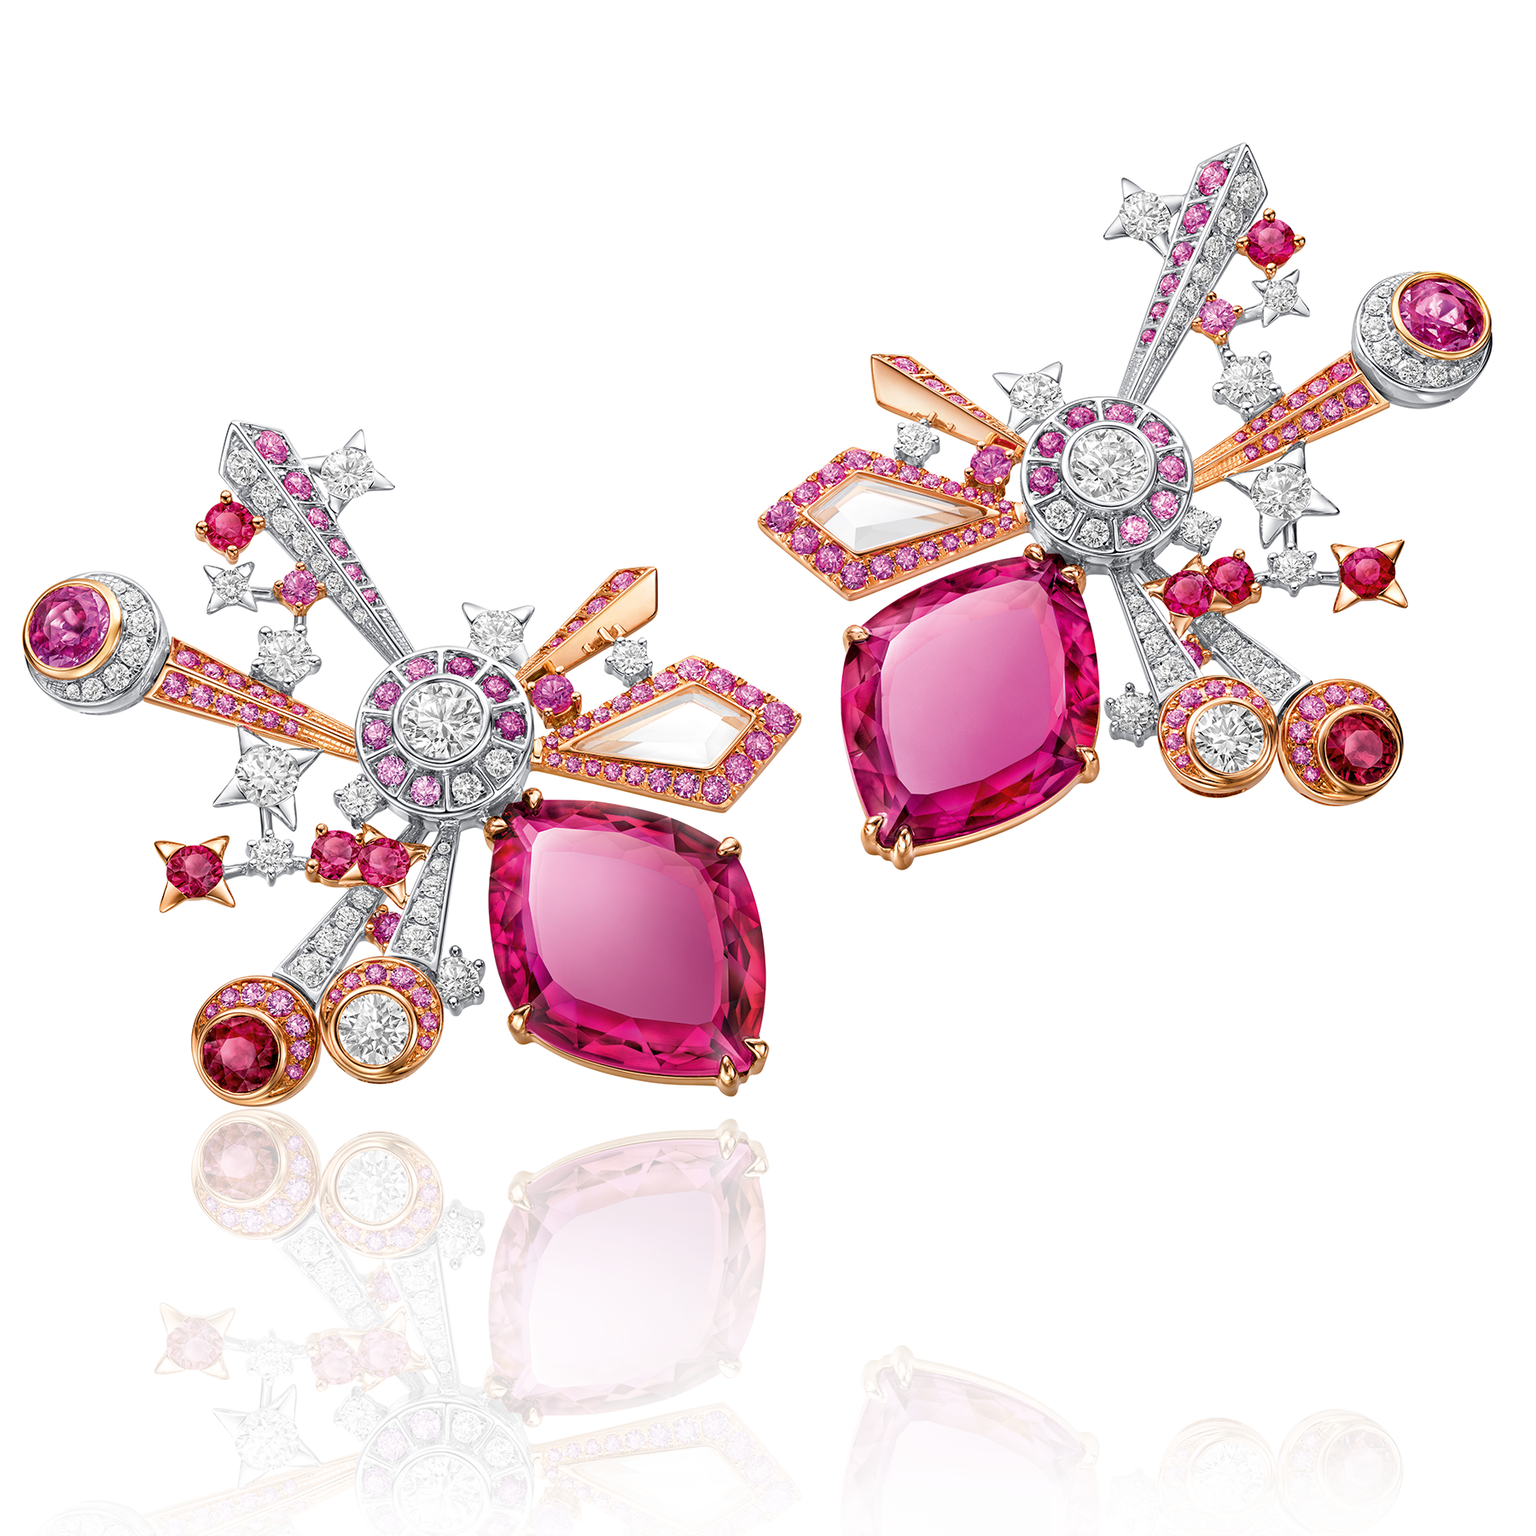 Chow Tai Fook L'Acoustique du Coeur earrings